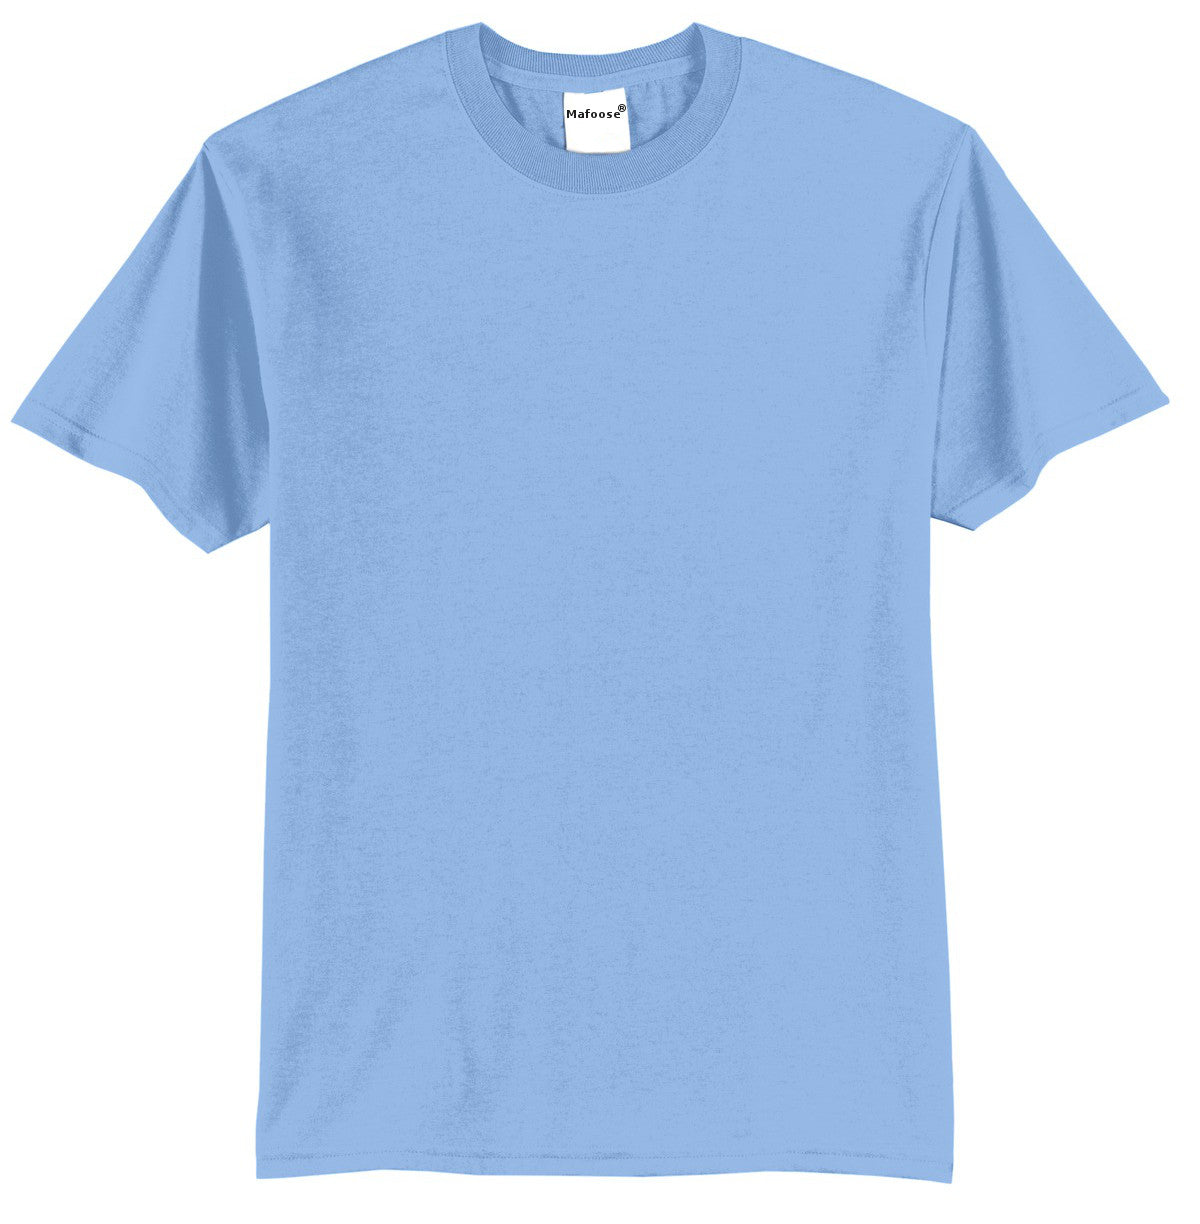 Mafoose Men's Core Blend Tee Shirt Light Blue